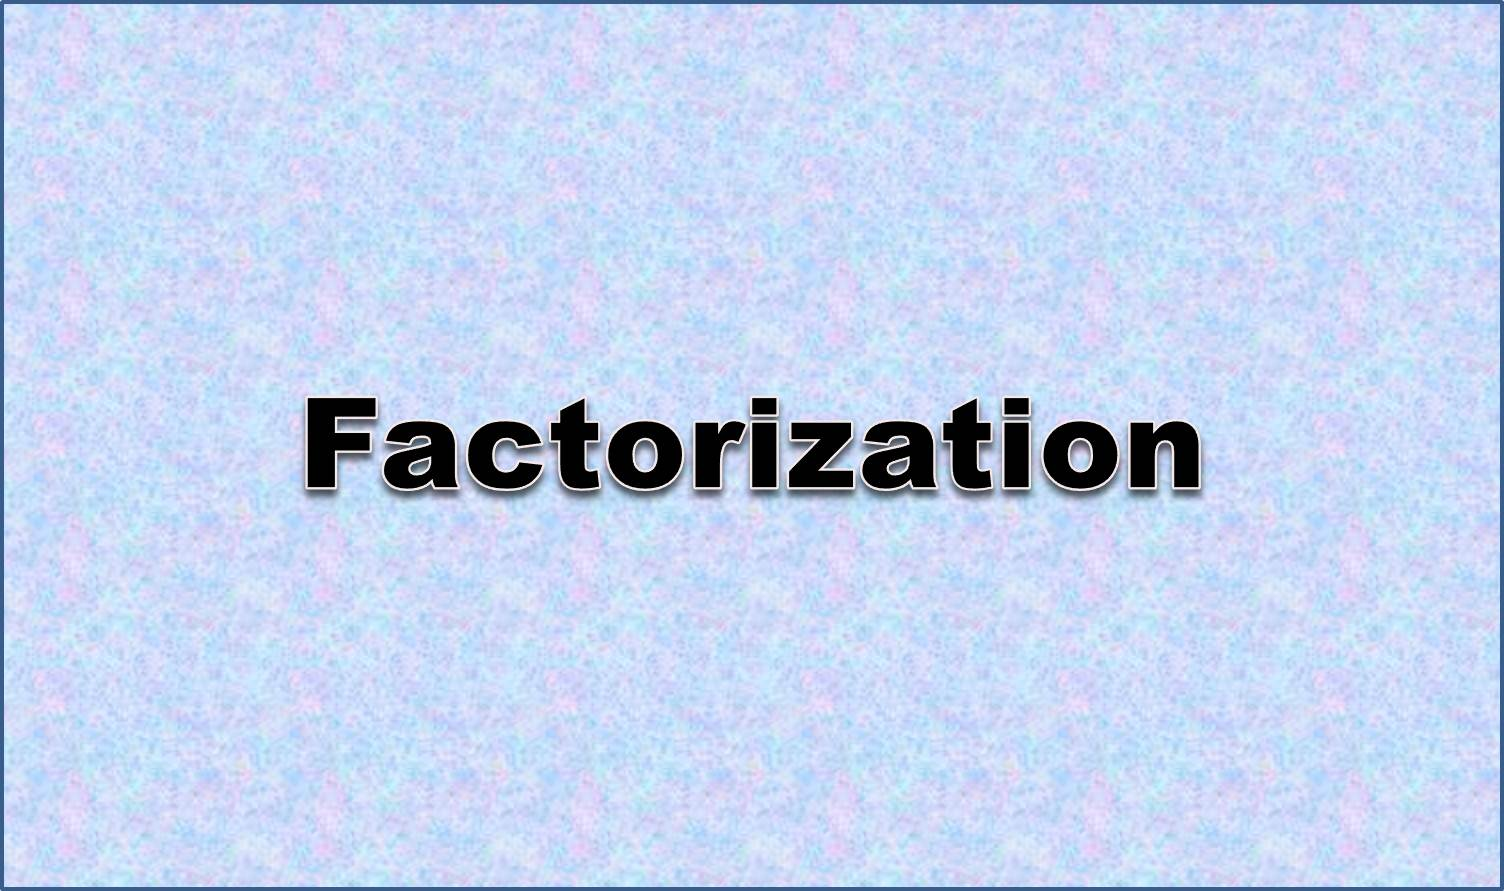 http://study.aisectonline.com/images/Factoring polynomials-common factor.jpg